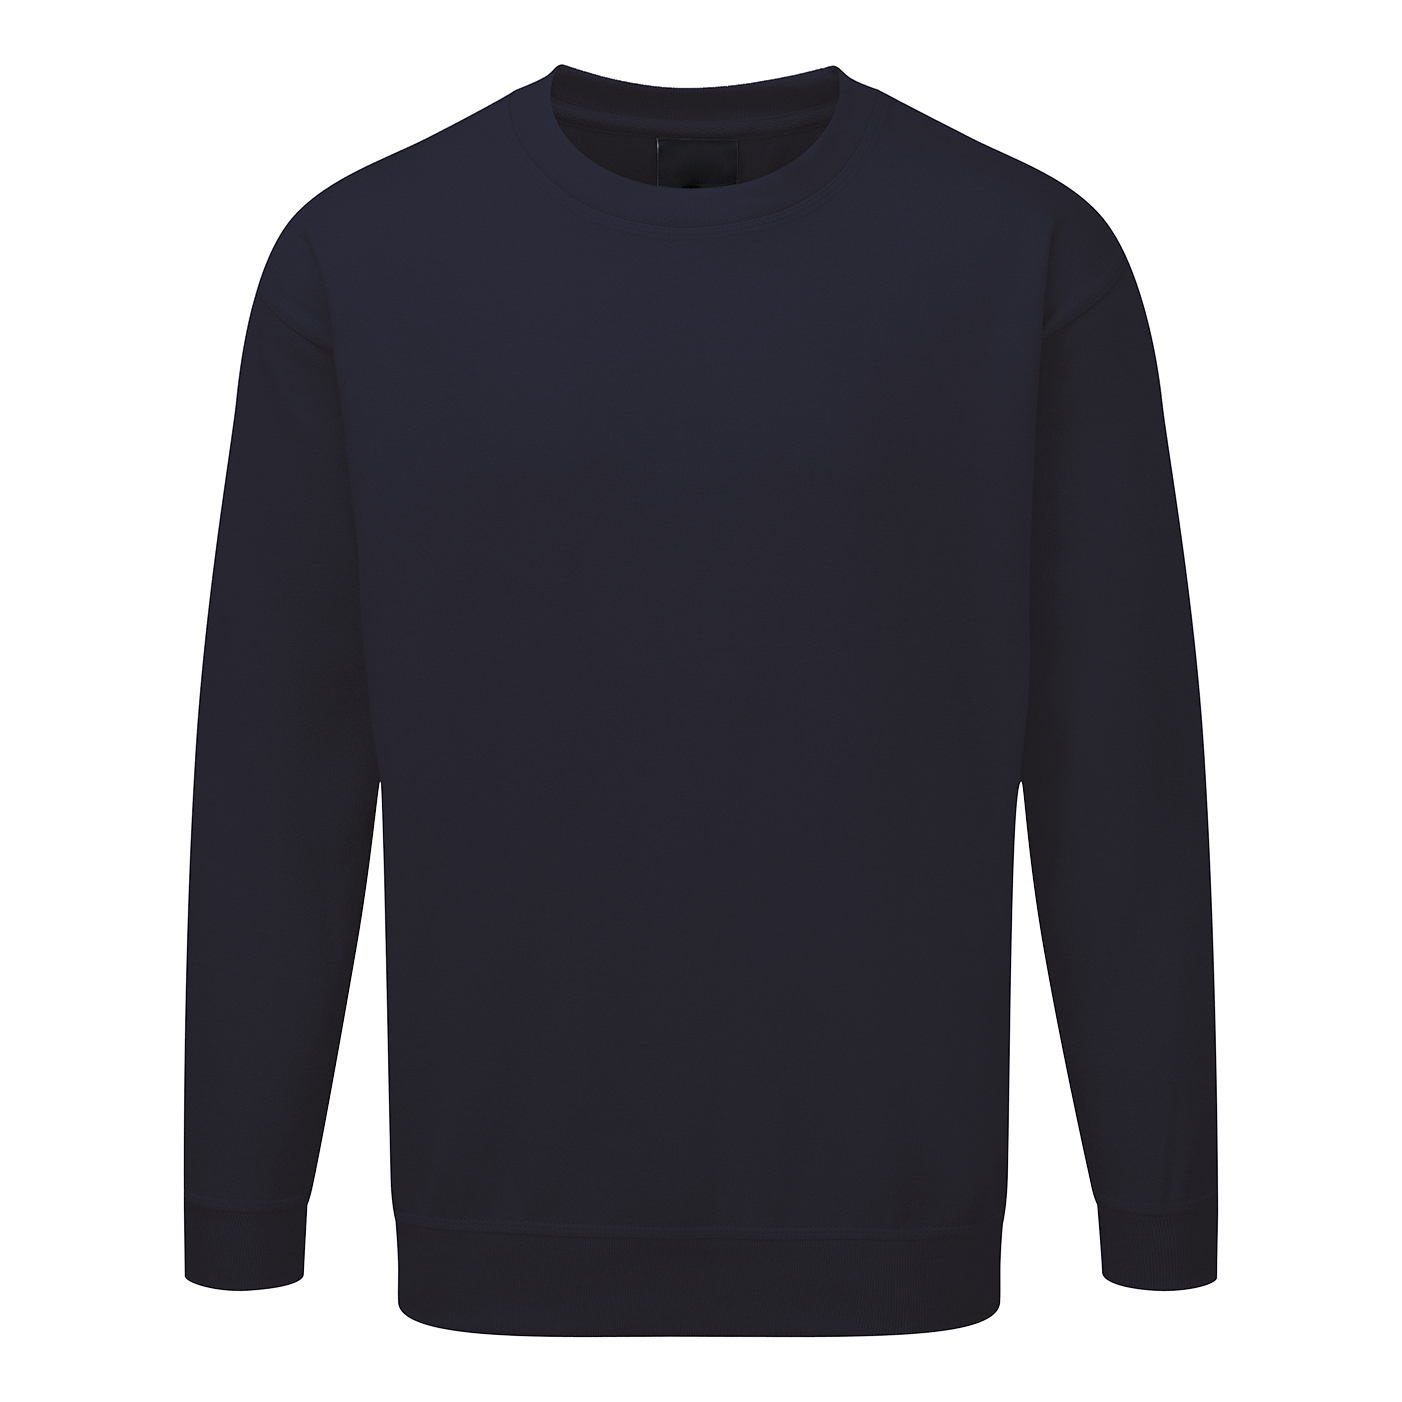 ST Sweatshirt Polyester/Cotton Fabric with Crew Neck XXLarge Navy Ref 56695 *Approx 3 Day Leadtime*